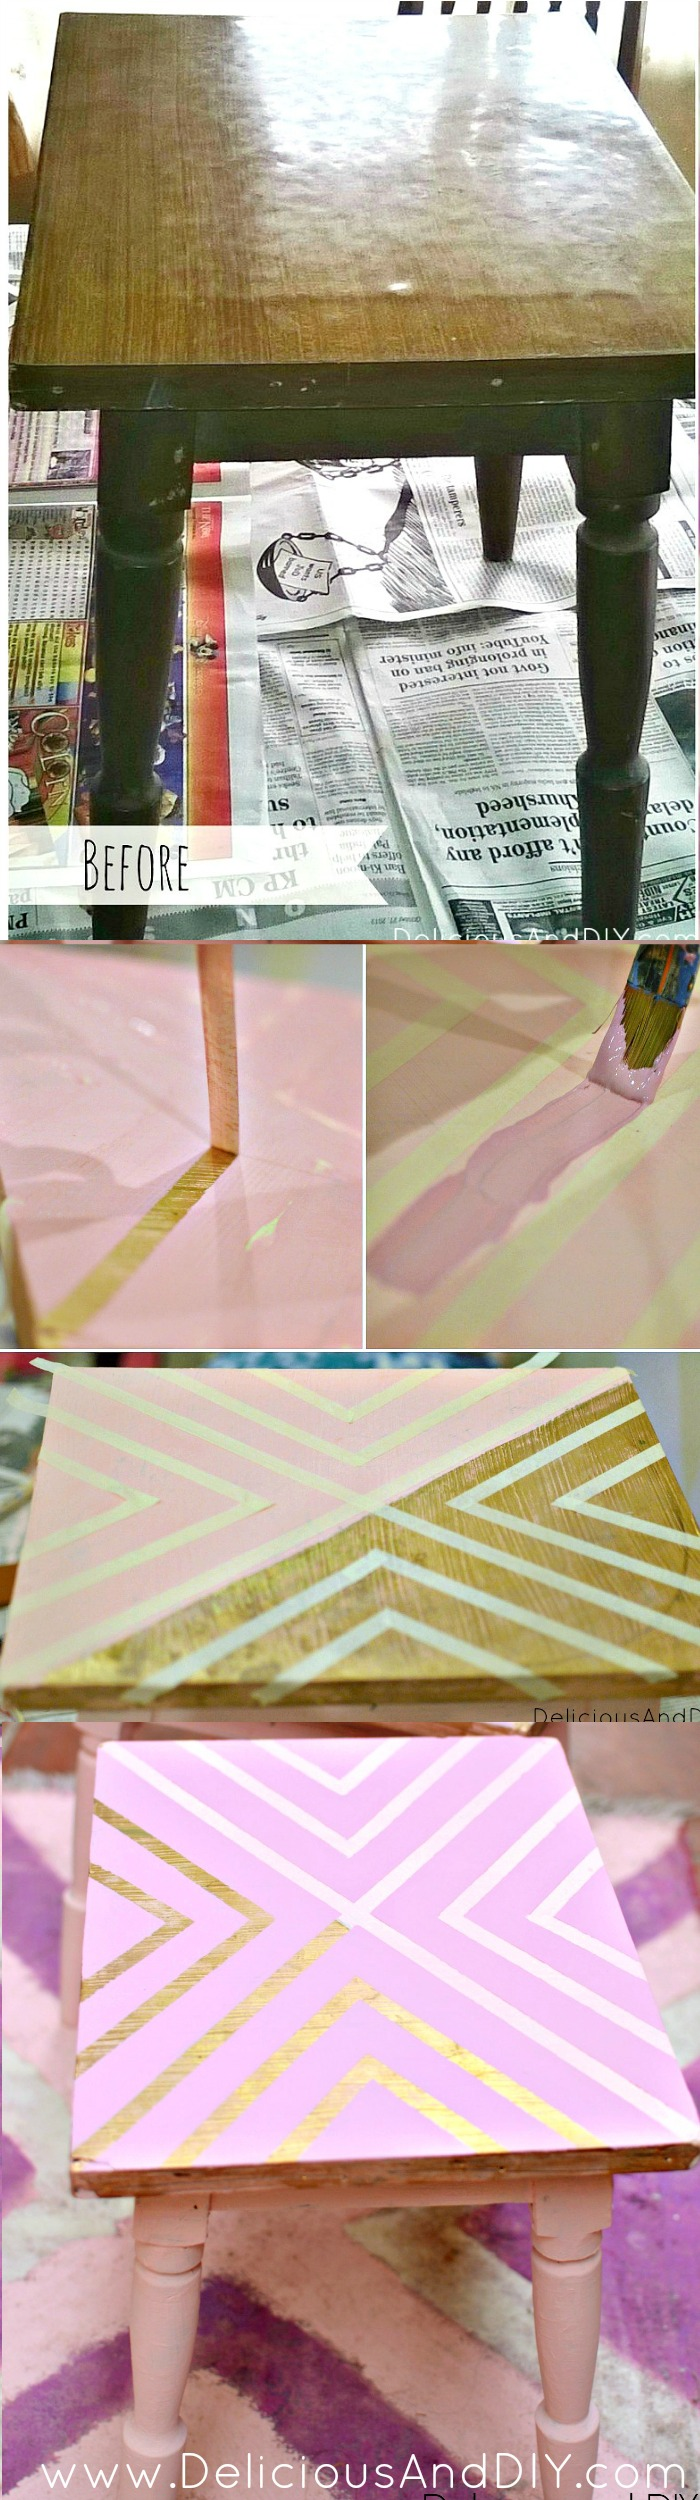 Create this fun pattern using Masking Tape and completely transform your table| Geometric Table| Painted Furniture| Home Decor| Masking Tape Table| DIY Geomteric Tables| Upcylced Furniture